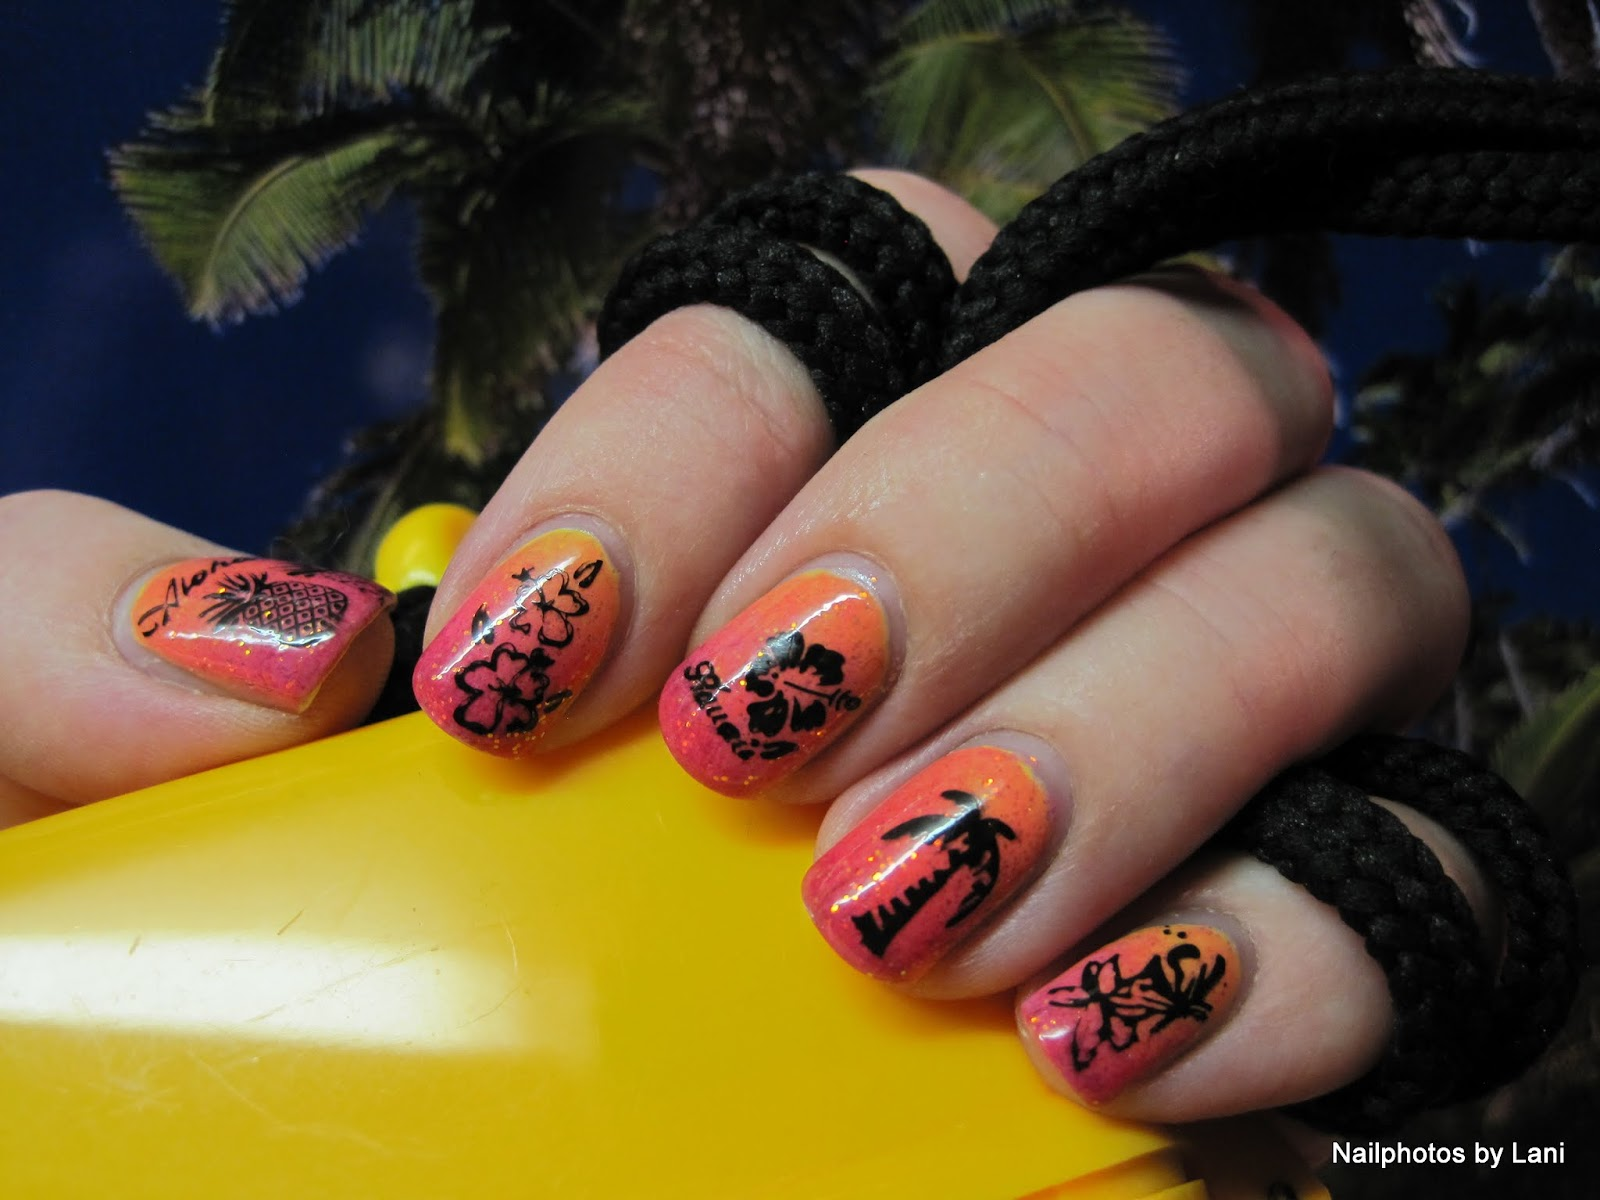 Nailphotos by Lani: Hawaii nails